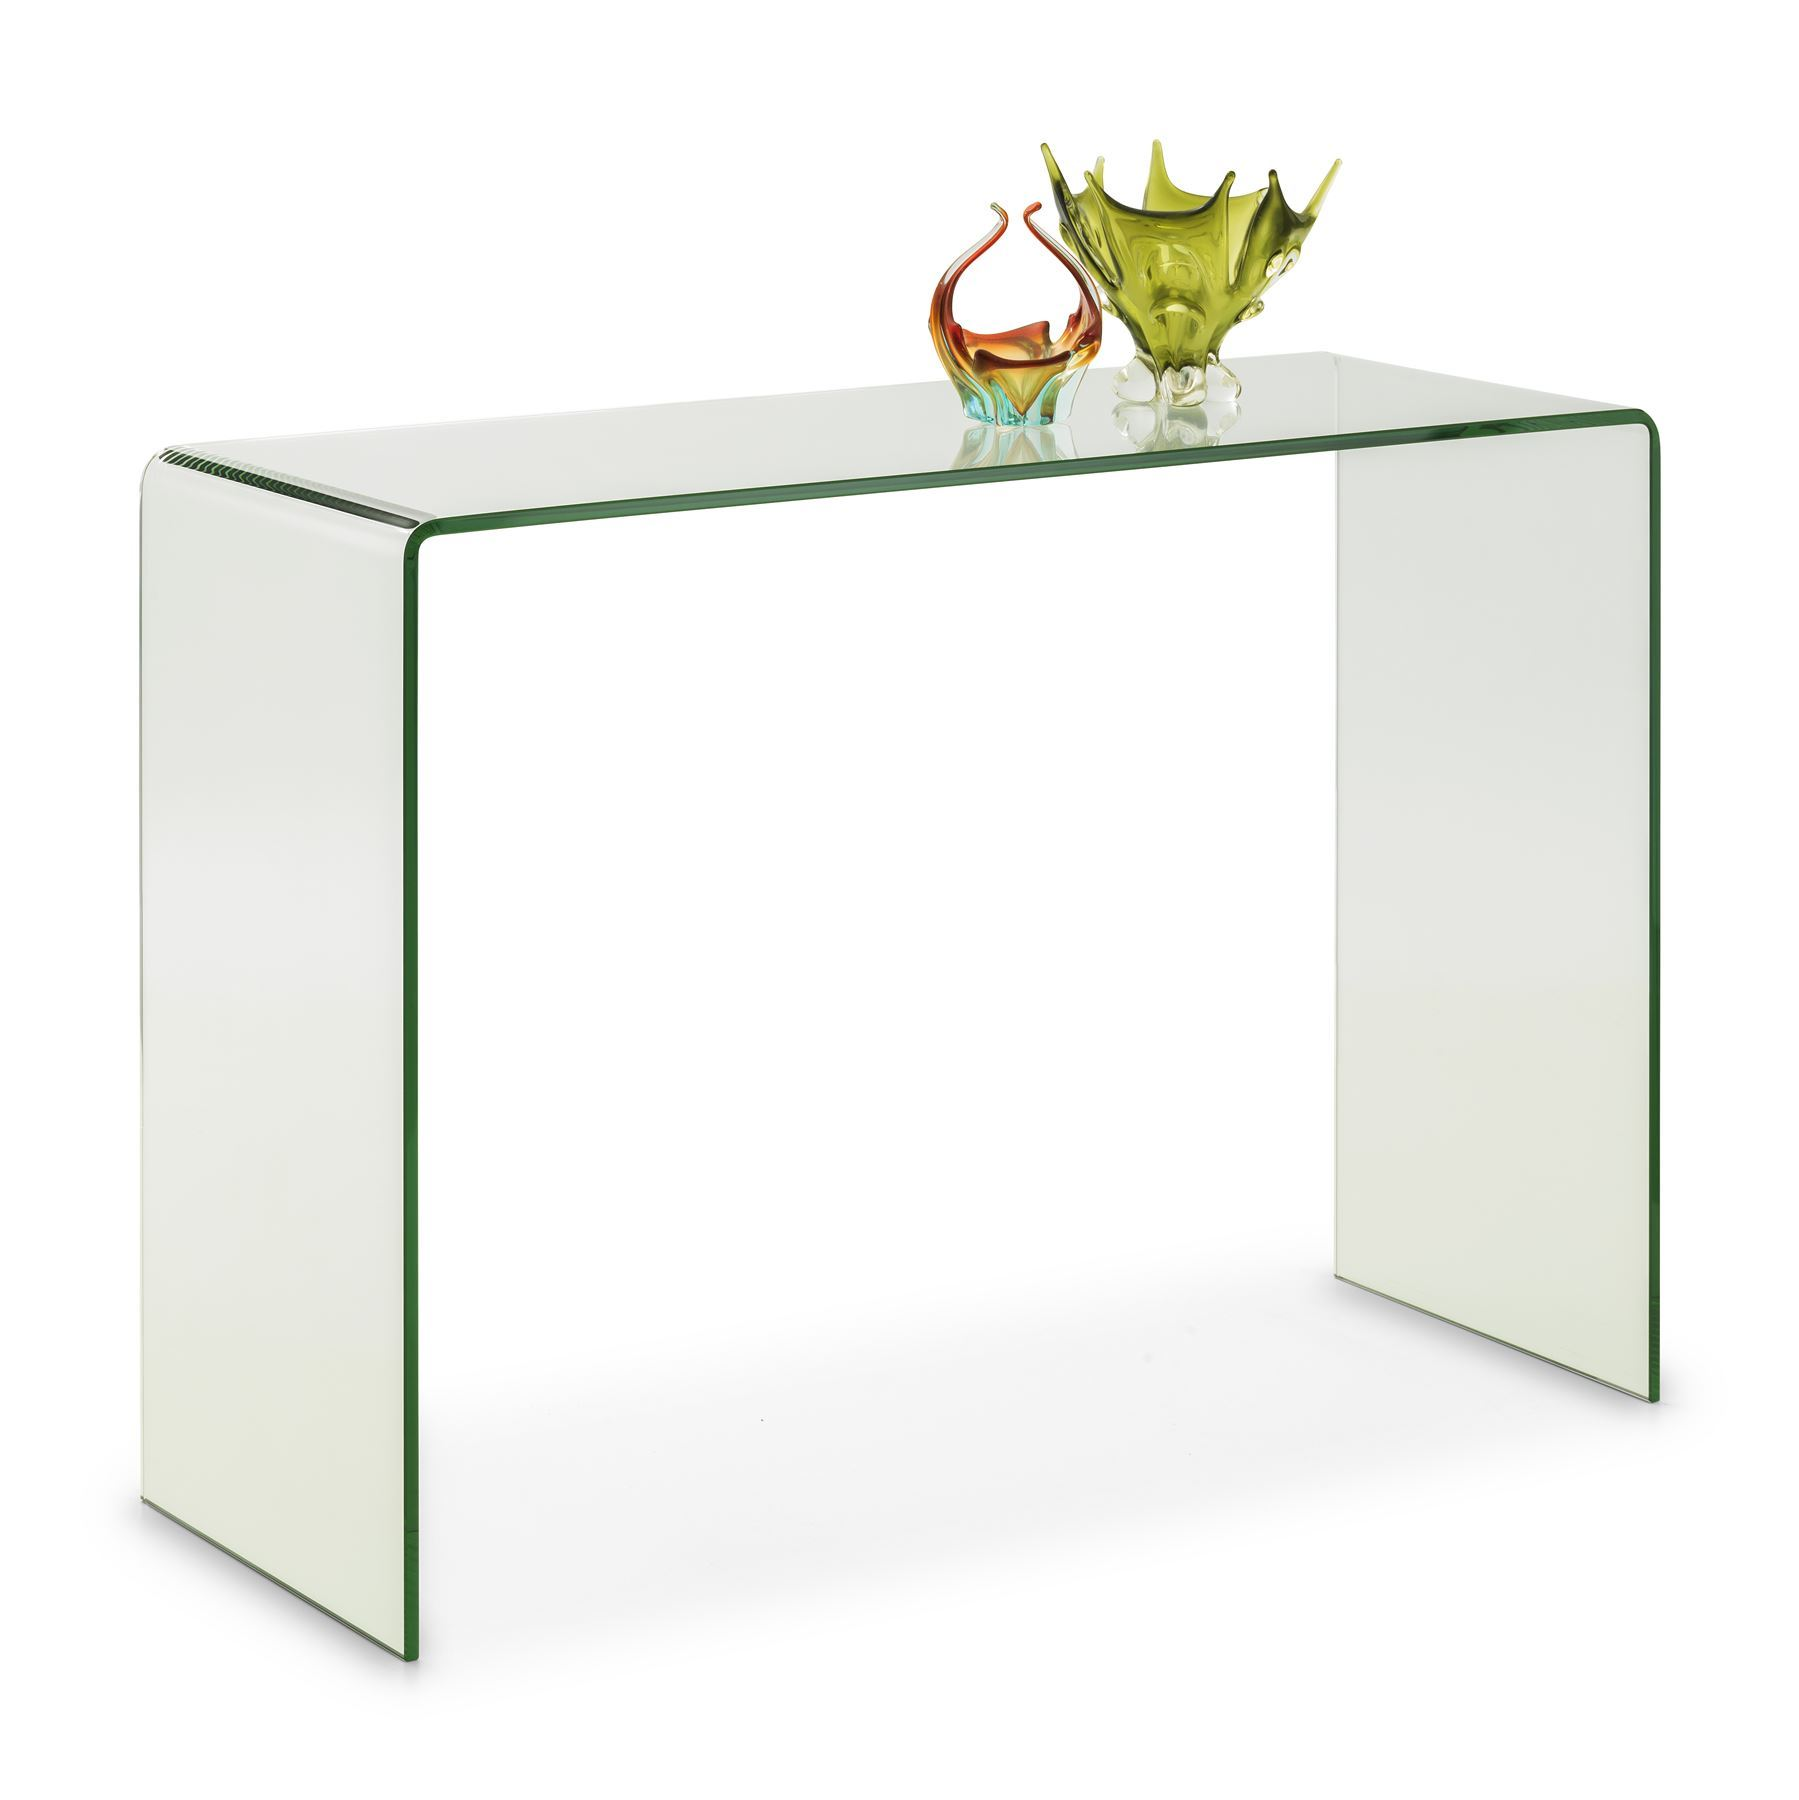 Julian Bowen Amalfi Designer Bent Clear Safety Glass Console Hall Table